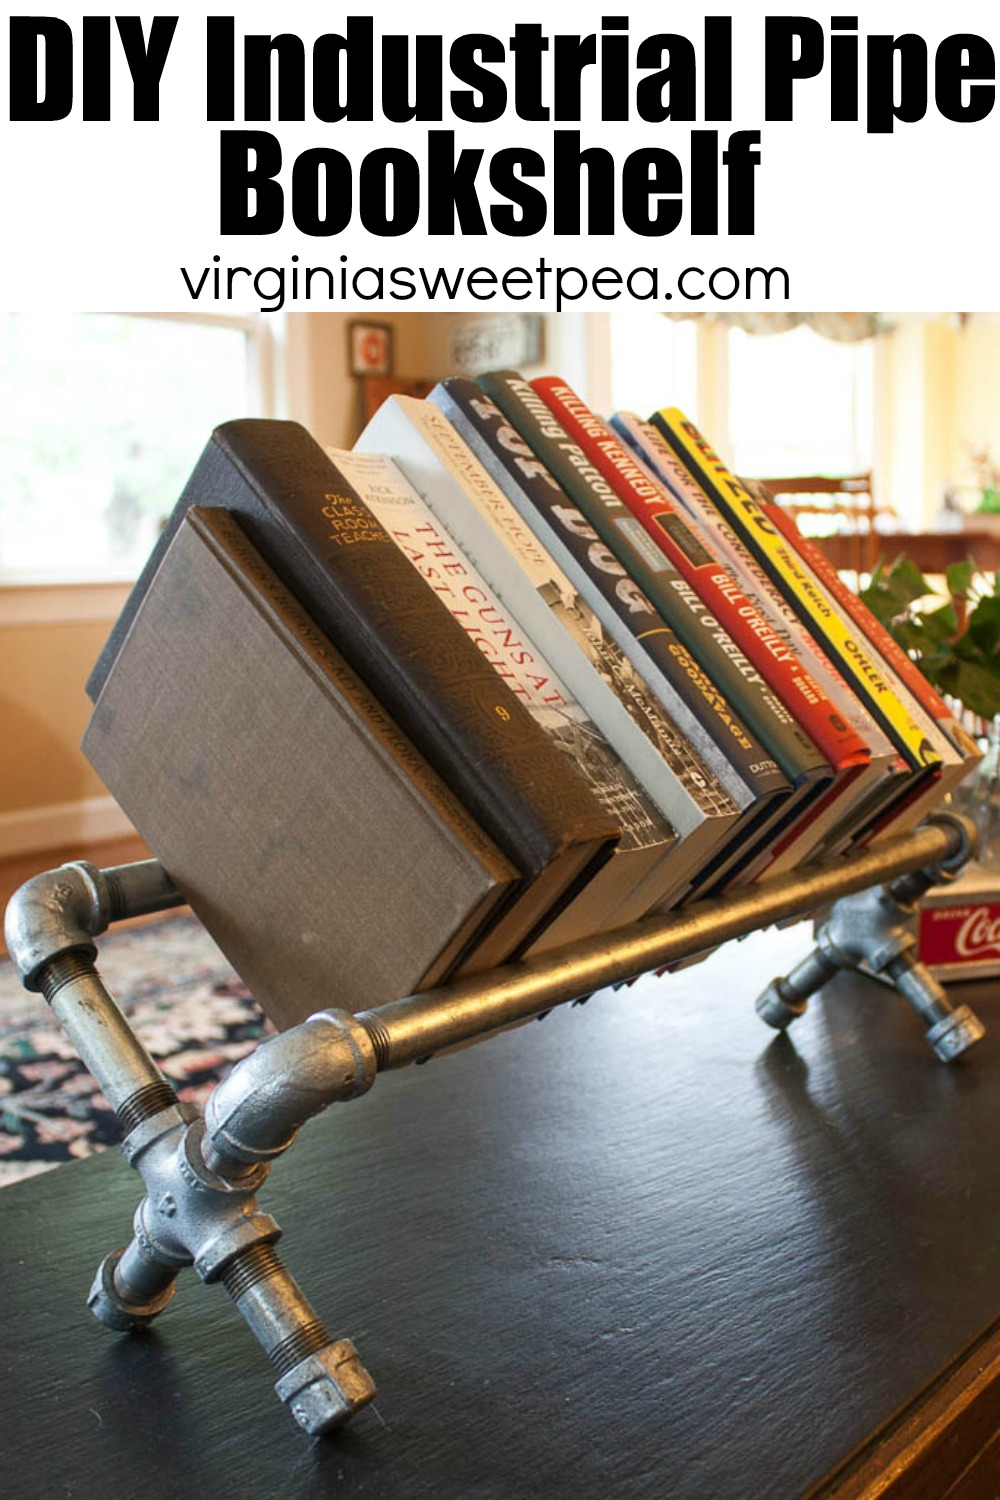 DIY Industrial Pipe Bookshelf - Learn how to use pipes and pipe fittings to make a bookshelf.  #diybookshelf #industrialstylebookshelf #pipeproject via @spaula